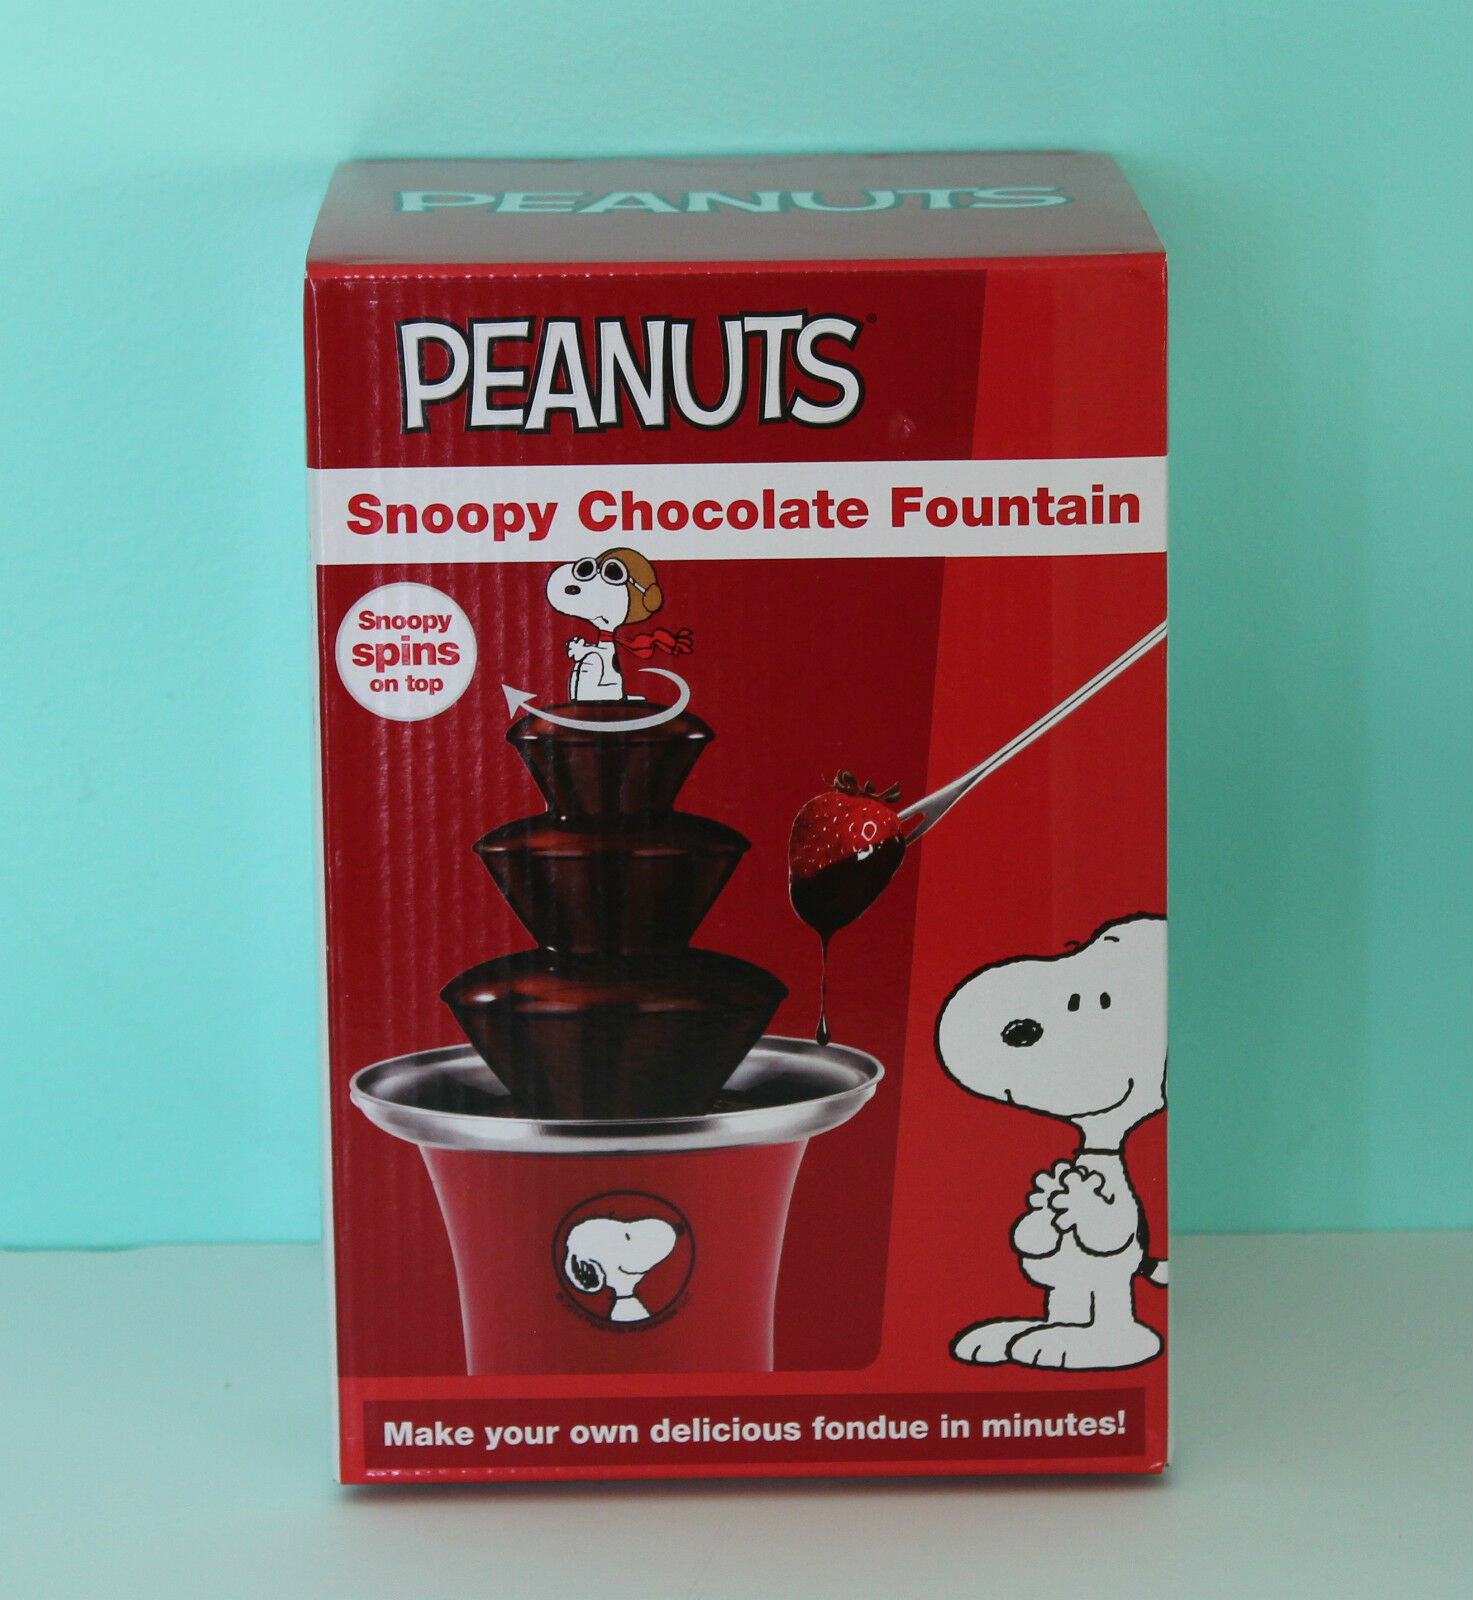 Peanuts Fondue Valentines Red New in Box Snoopy Chocolate Fountain tiered